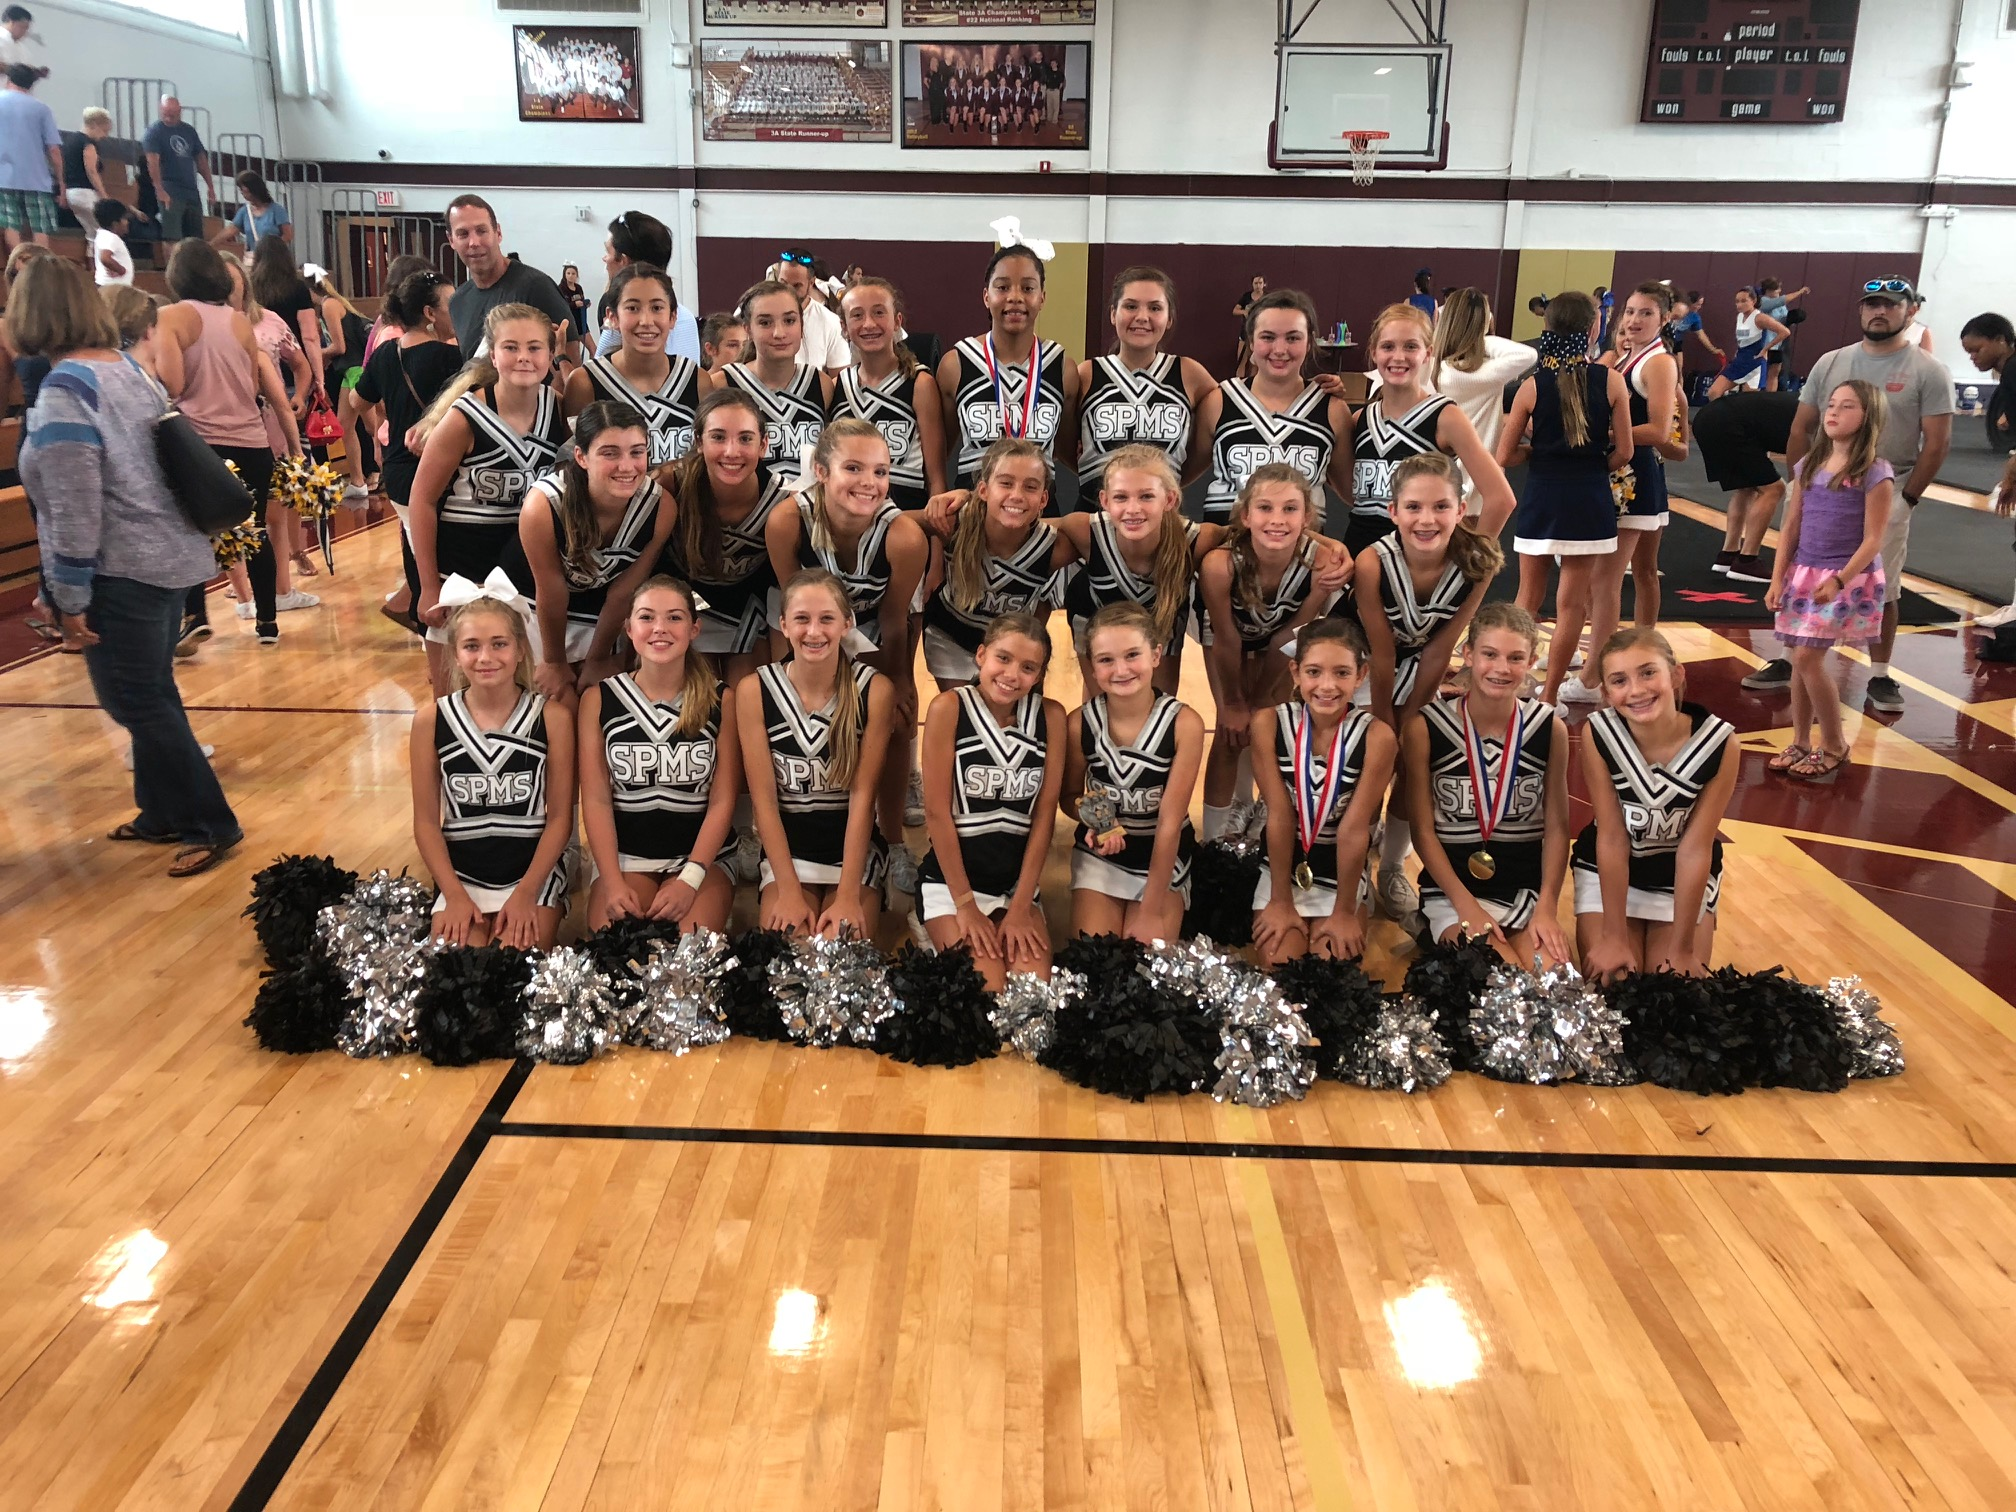 Raiders Cheer Camp